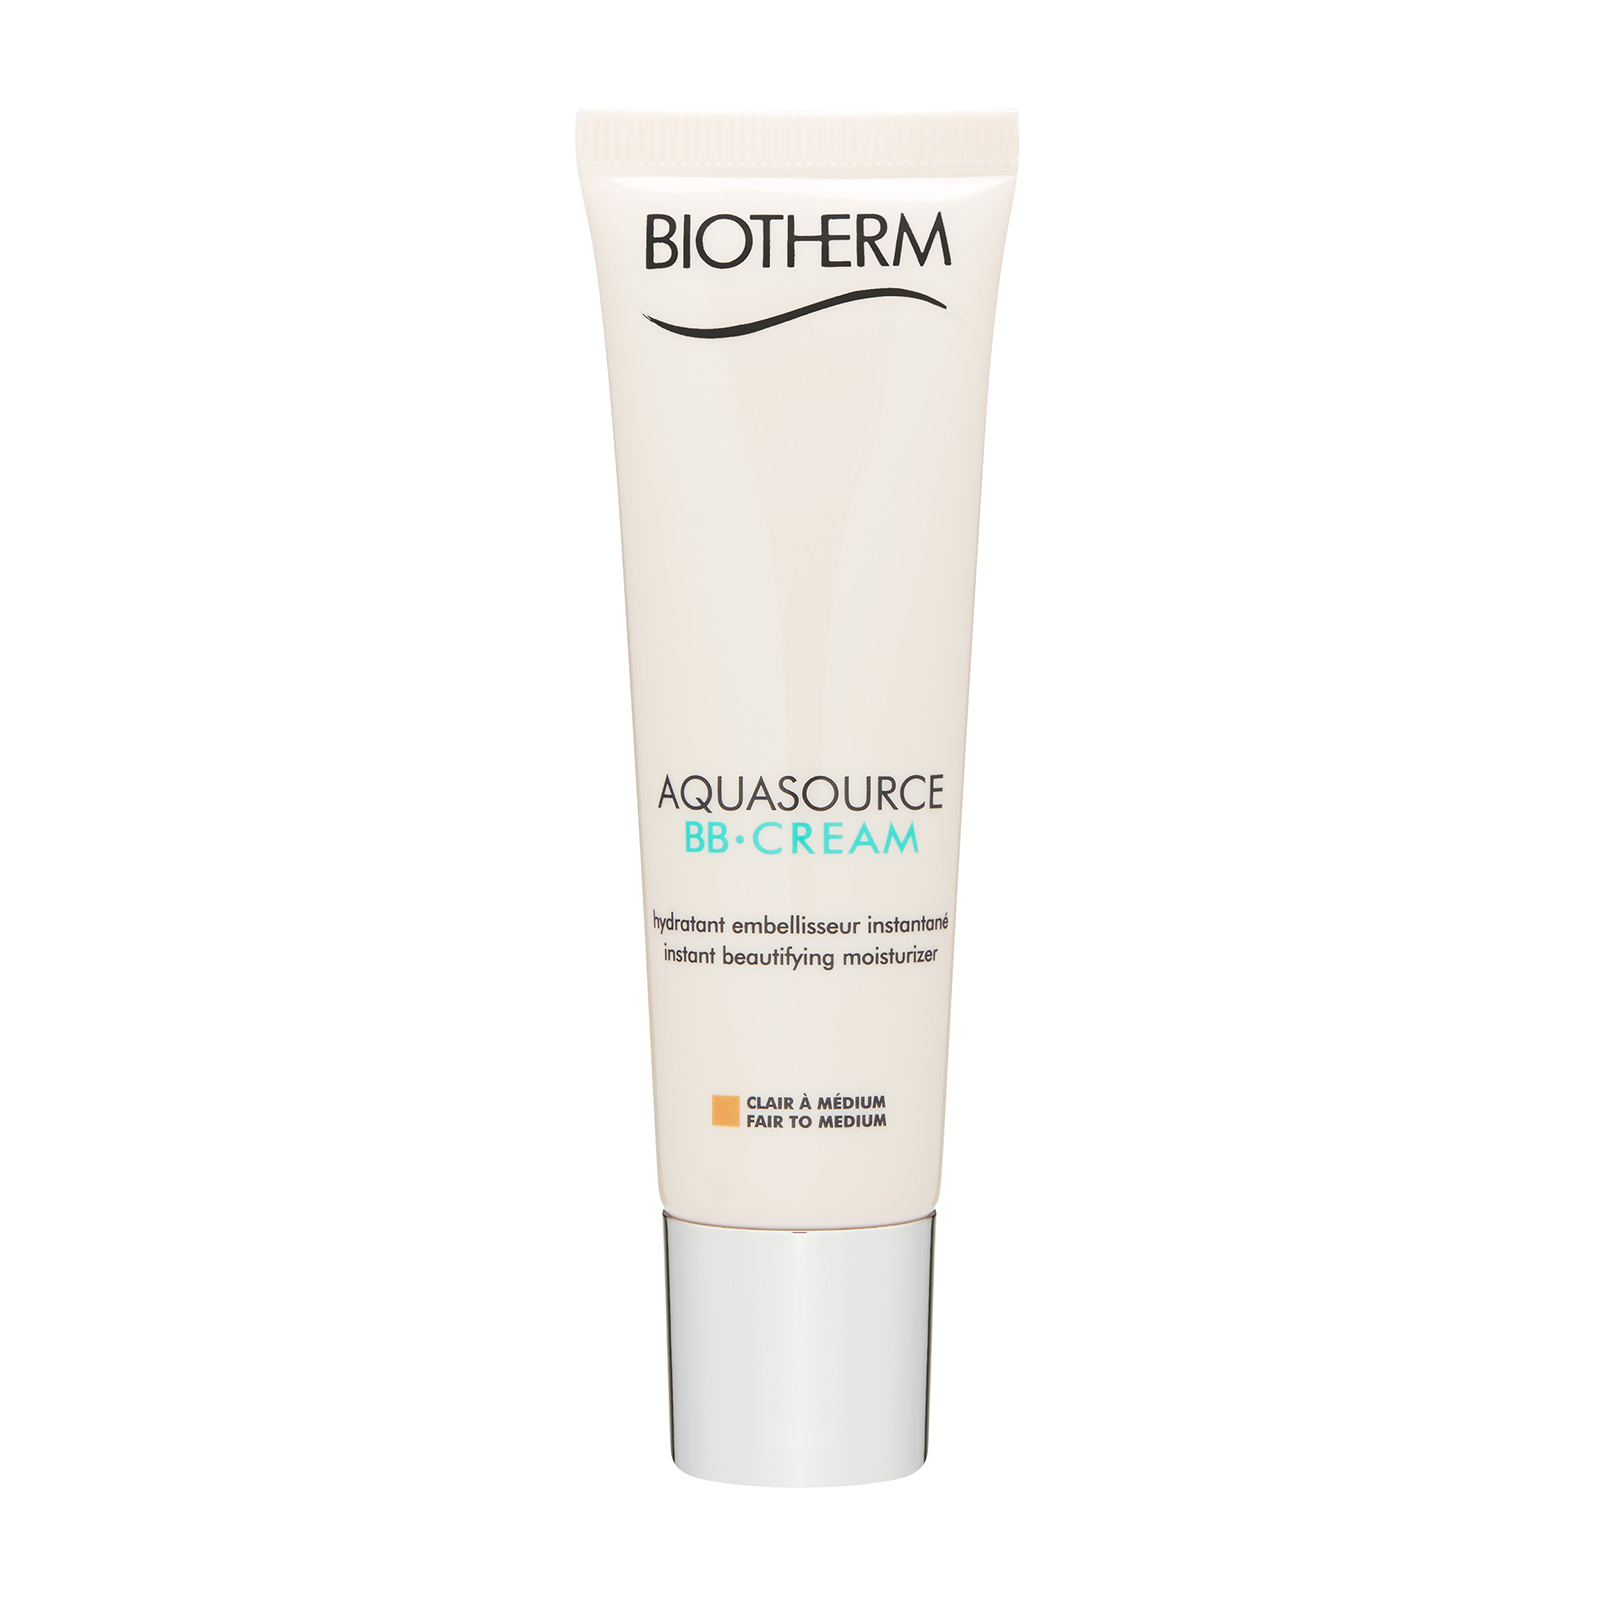 Biotherm Aquasource  BB Cream Instant Beautifying Moisturizer FPS / SPF15 Fair To Medium, 1.01oz, 30ml